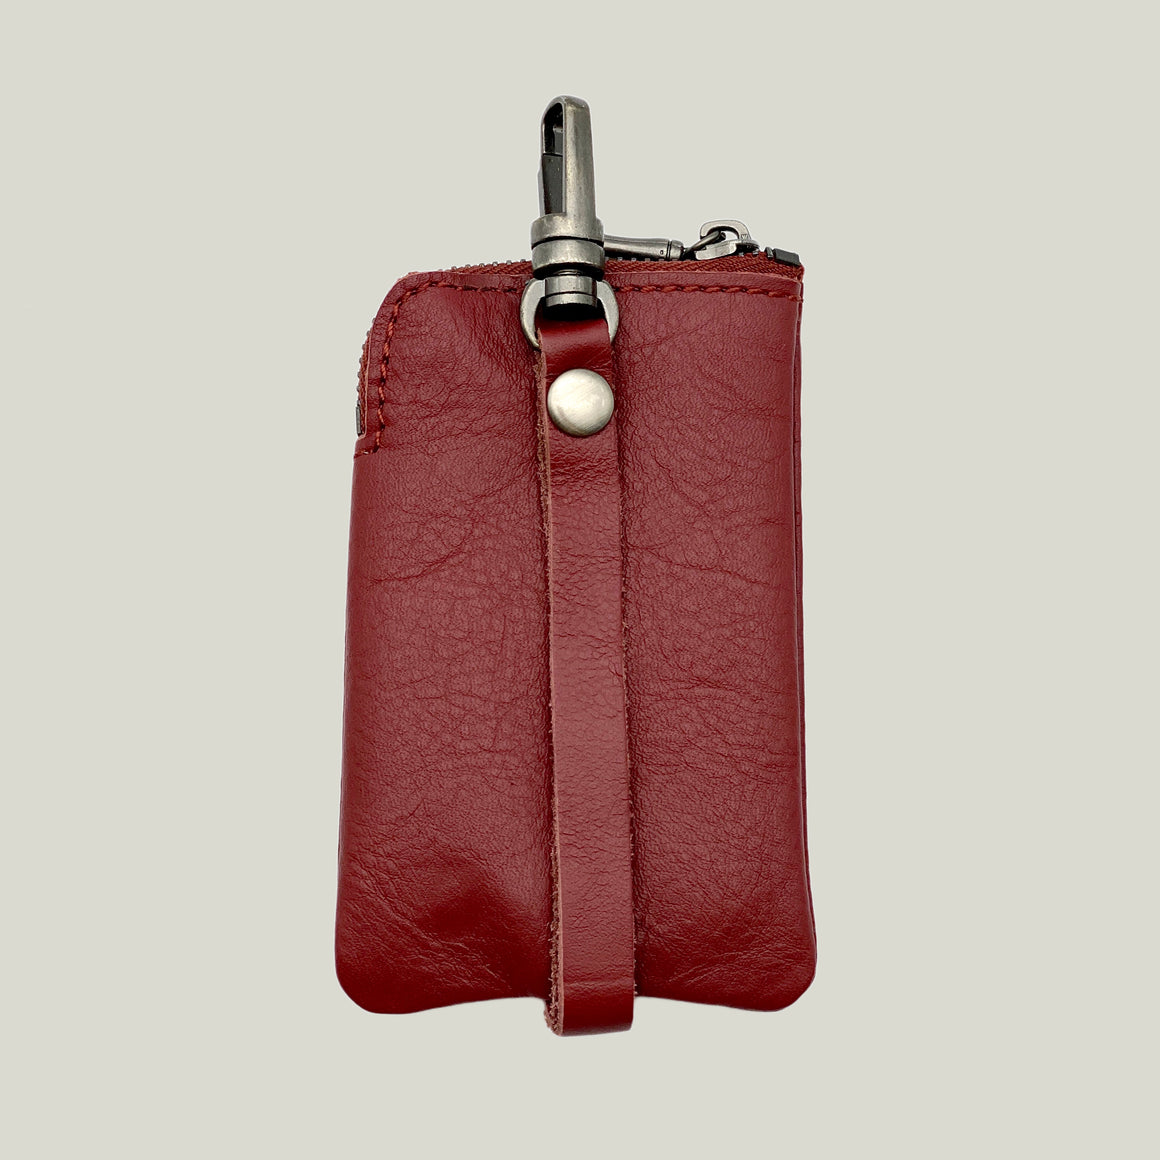 Key Pouch 02 leather